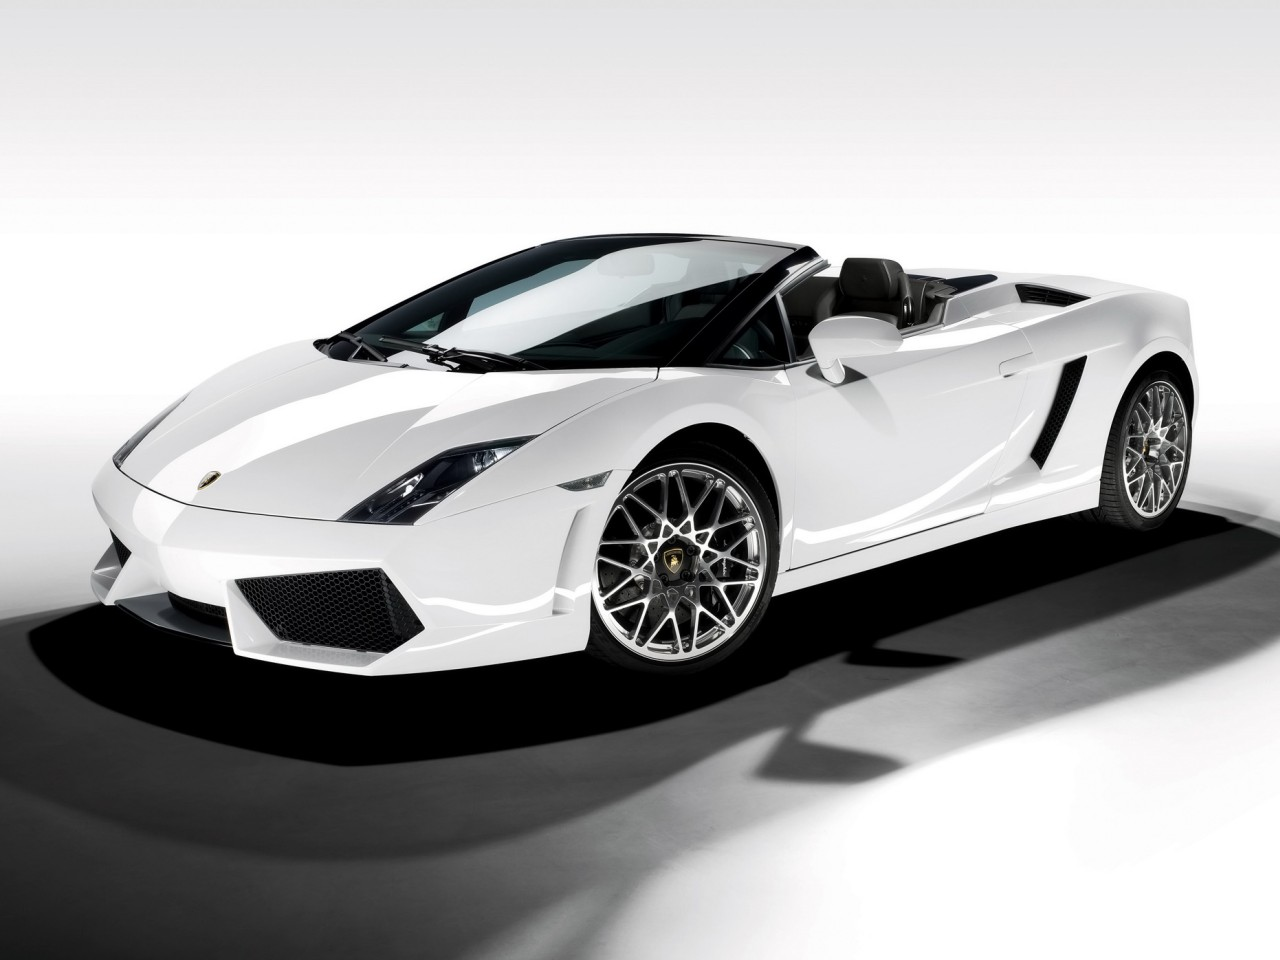 lamborghini gallardo lp560 4 spyder wallpaper. Black Bedroom Furniture Sets. Home Design Ideas